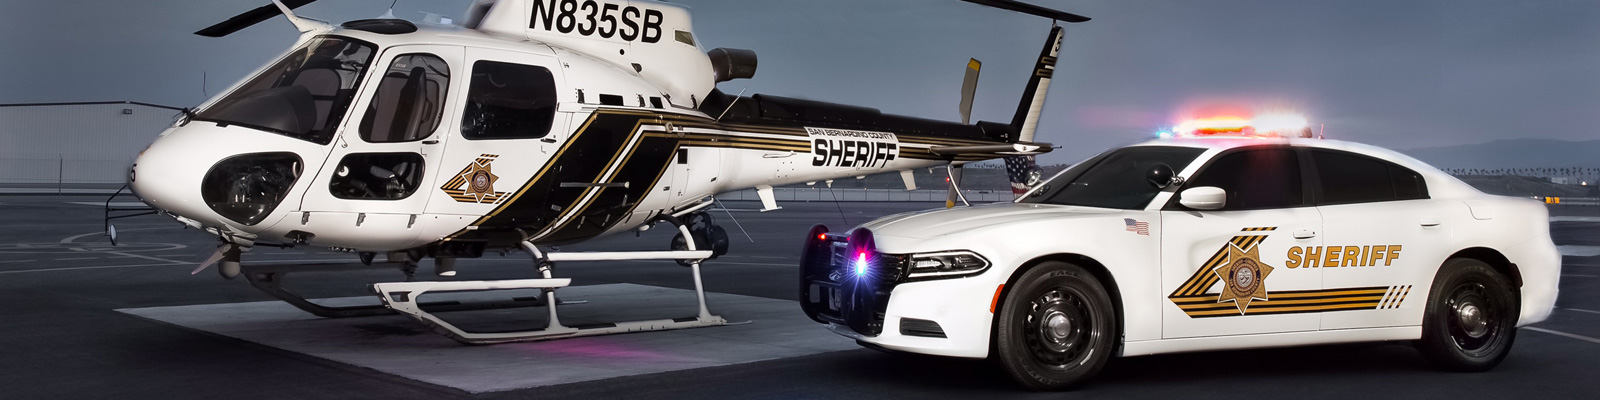 Helicopter and Police Car